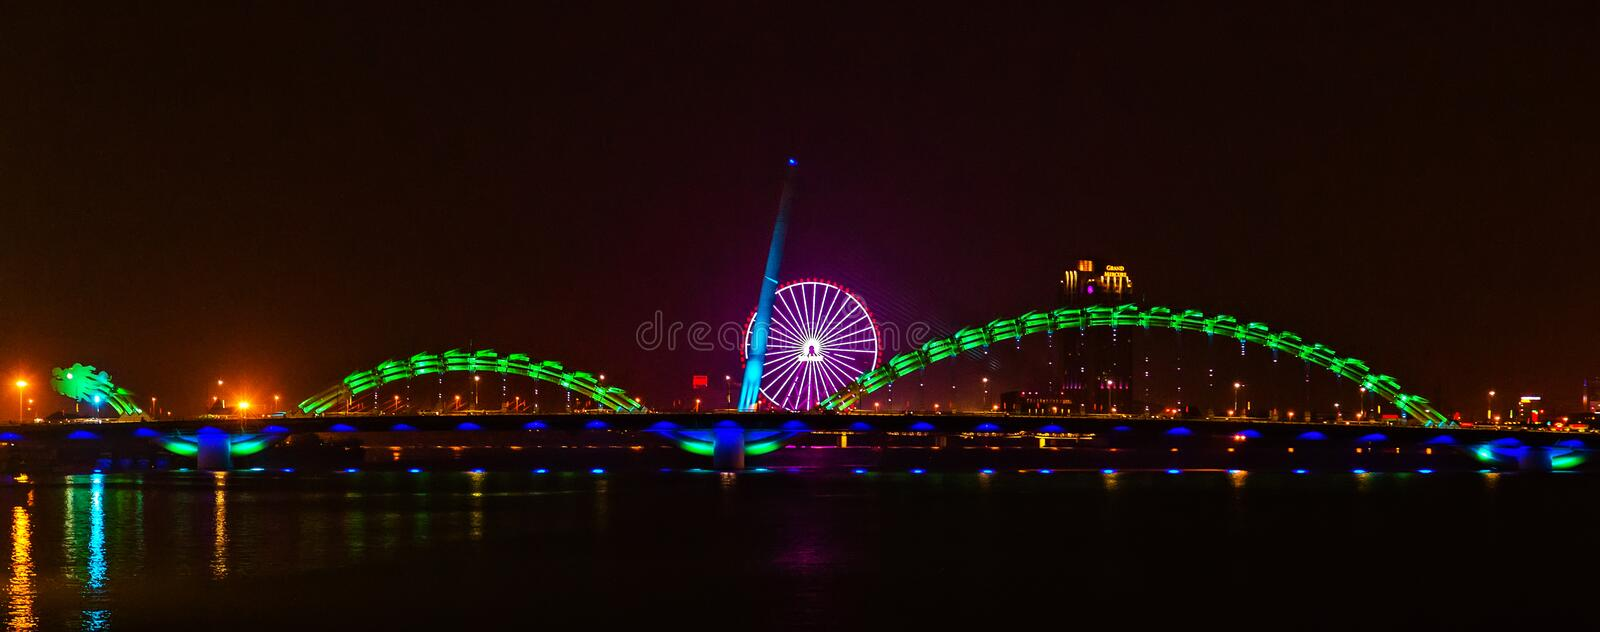 Dragon golden Bridge Han river in Da Nang in Vietnam. Dragon Bridge in the evening as it is illuminated with colourful LED lights, Han river in Da Nang, Vietnam stock photo